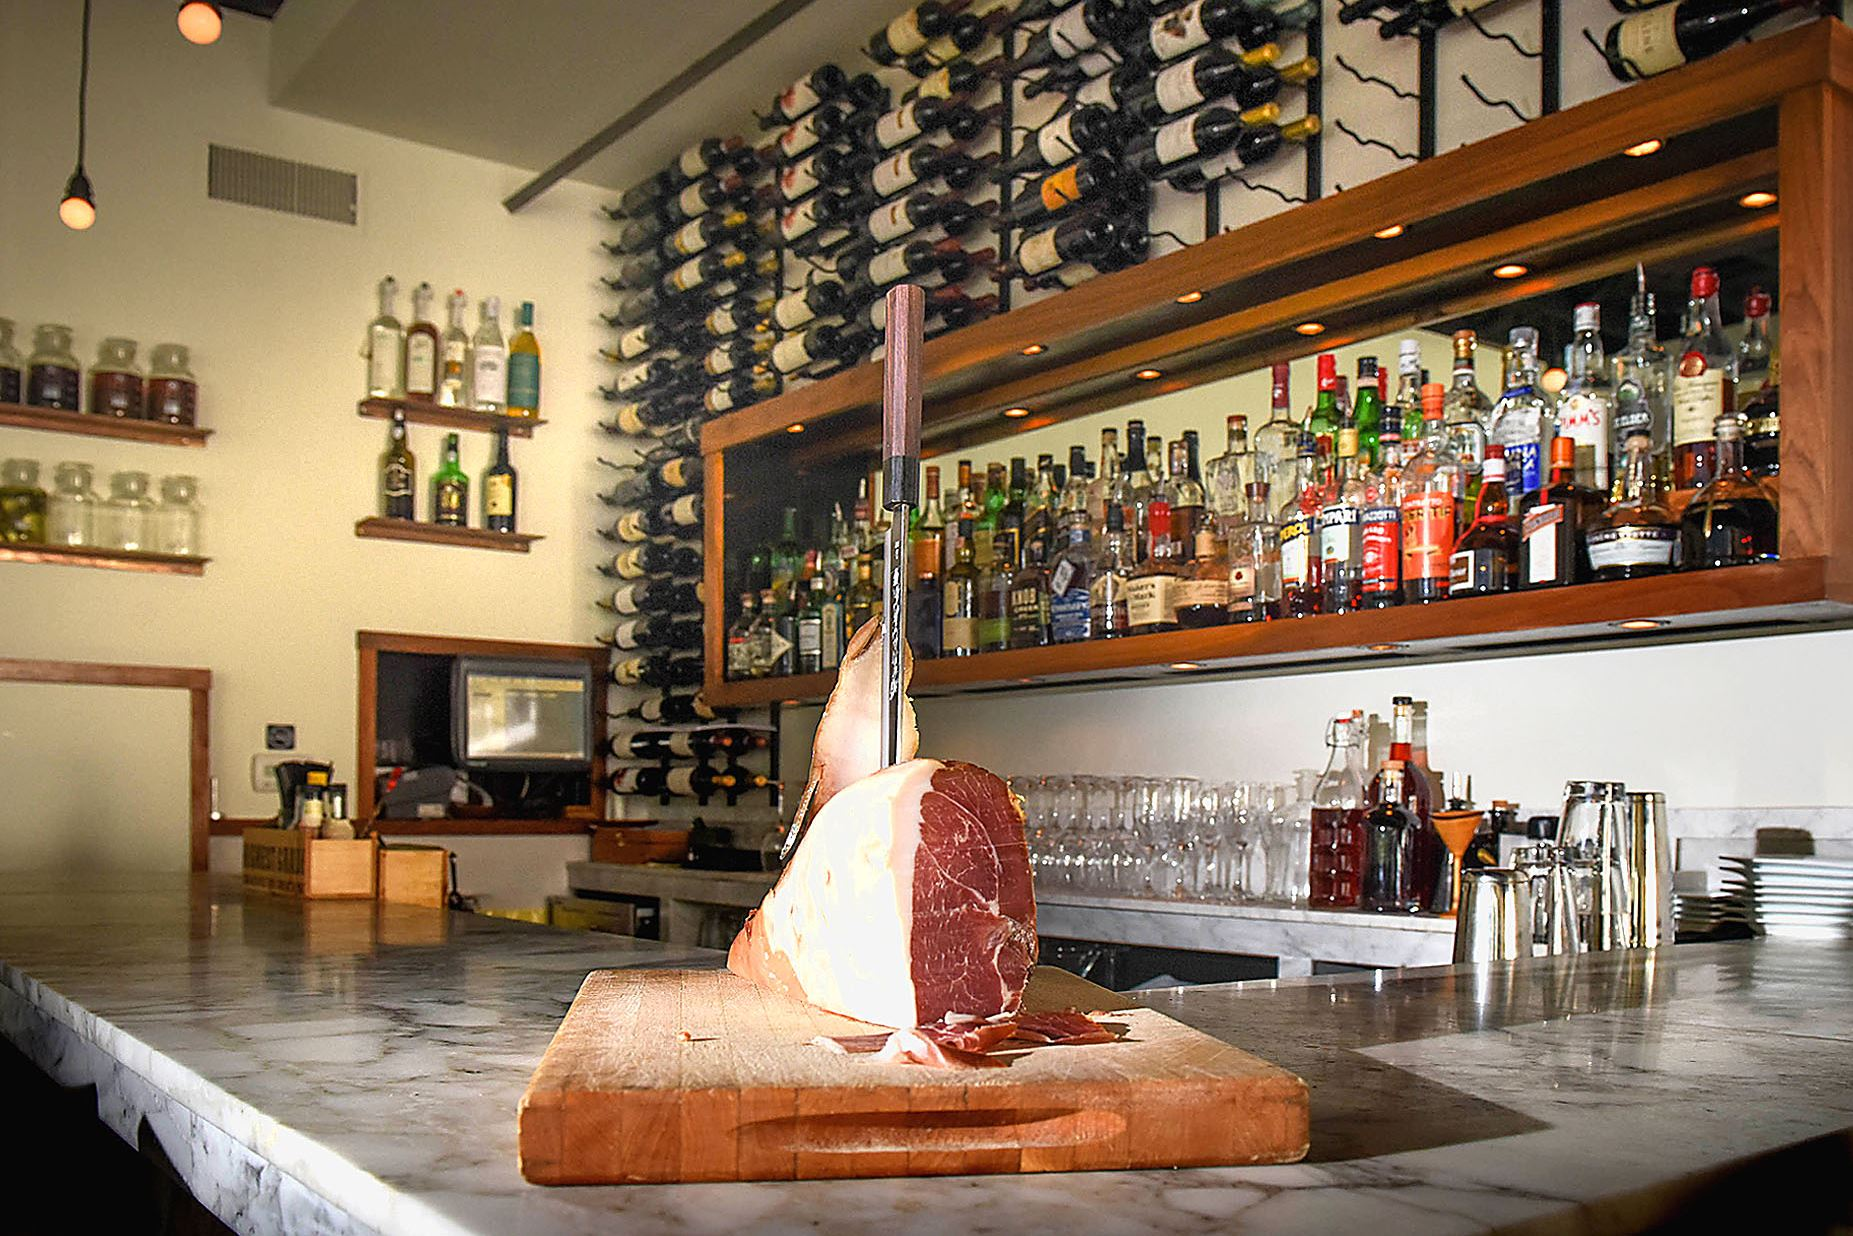 20170207smVivo-1 Marble top bar in front of the wine rack at Vivo Kitchen in Sewickley.